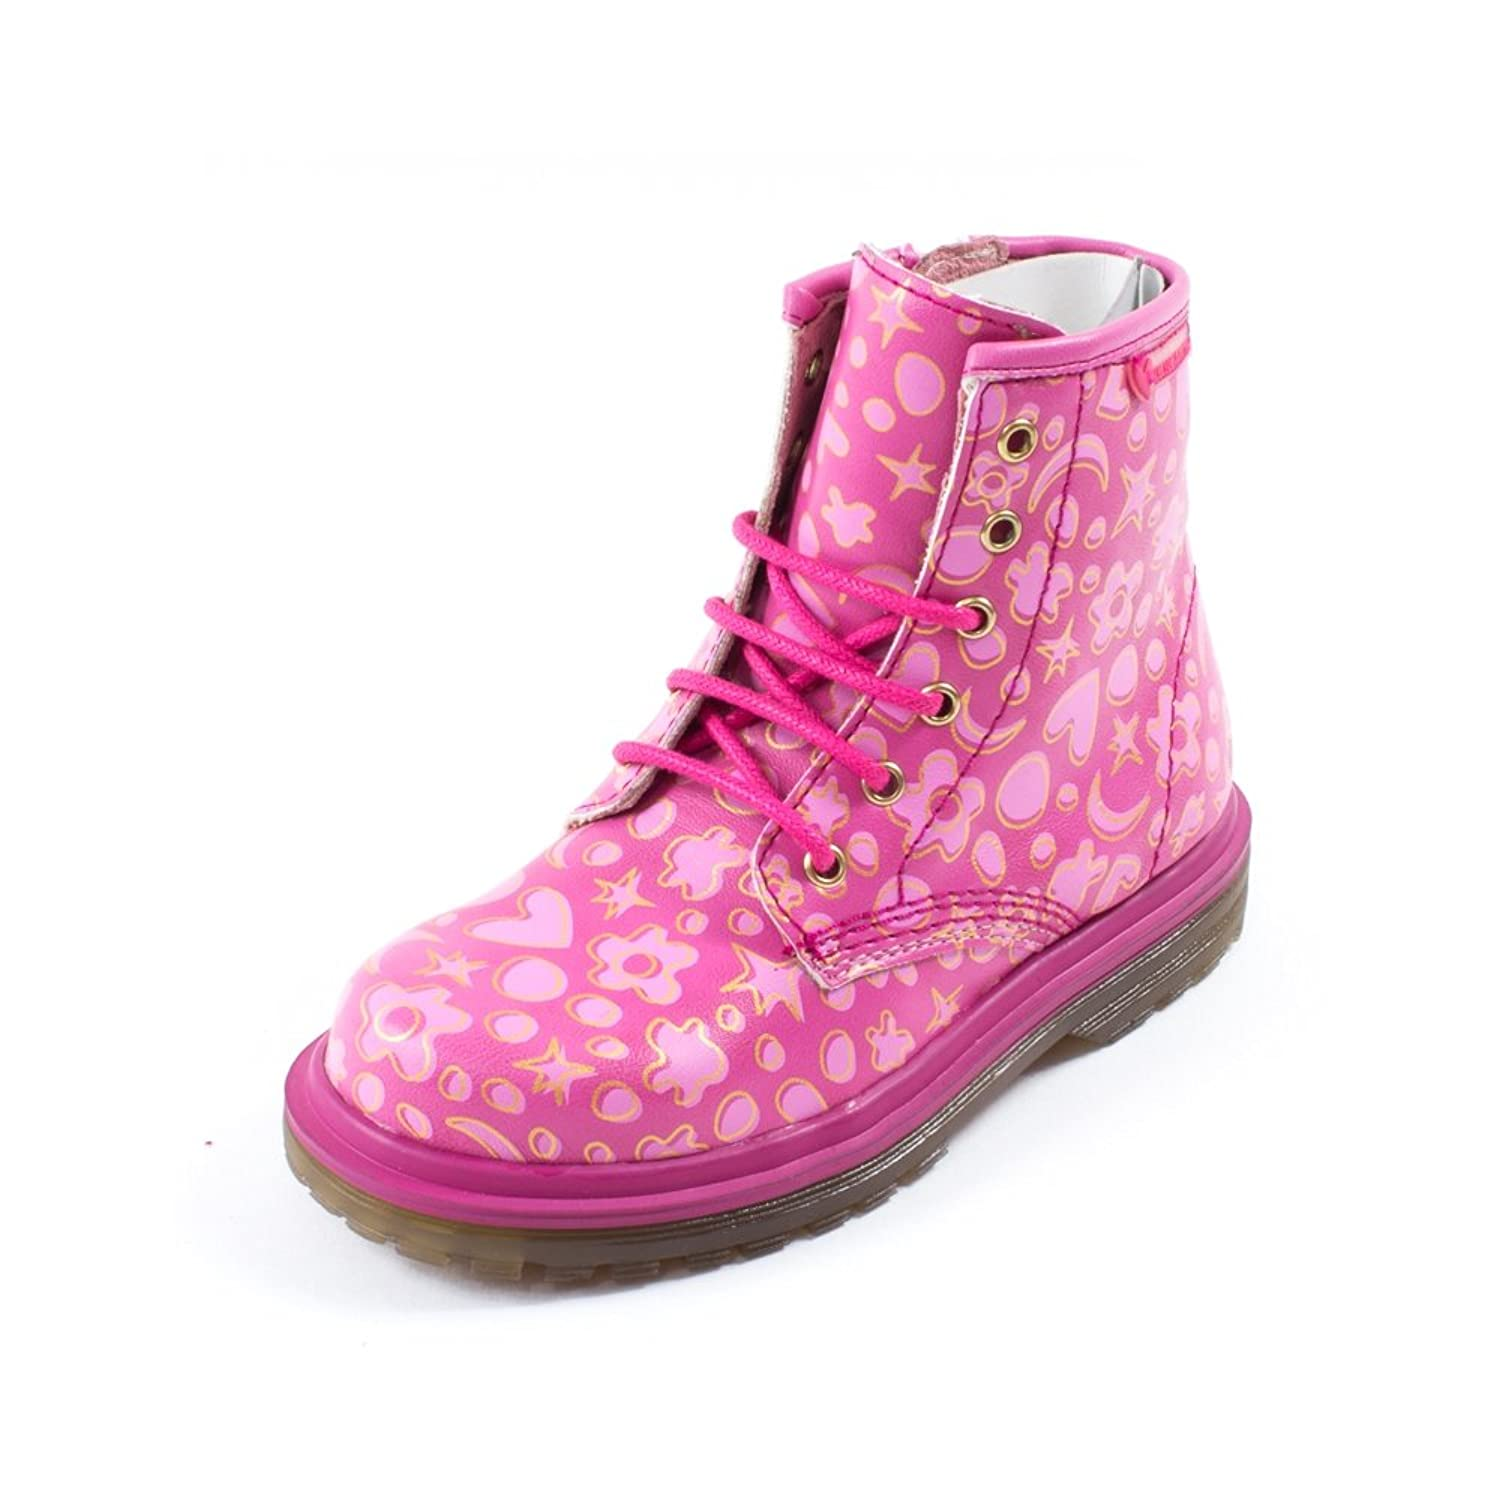 Agatha Ruiz de la Prada Bottines Fille Rose 141968B